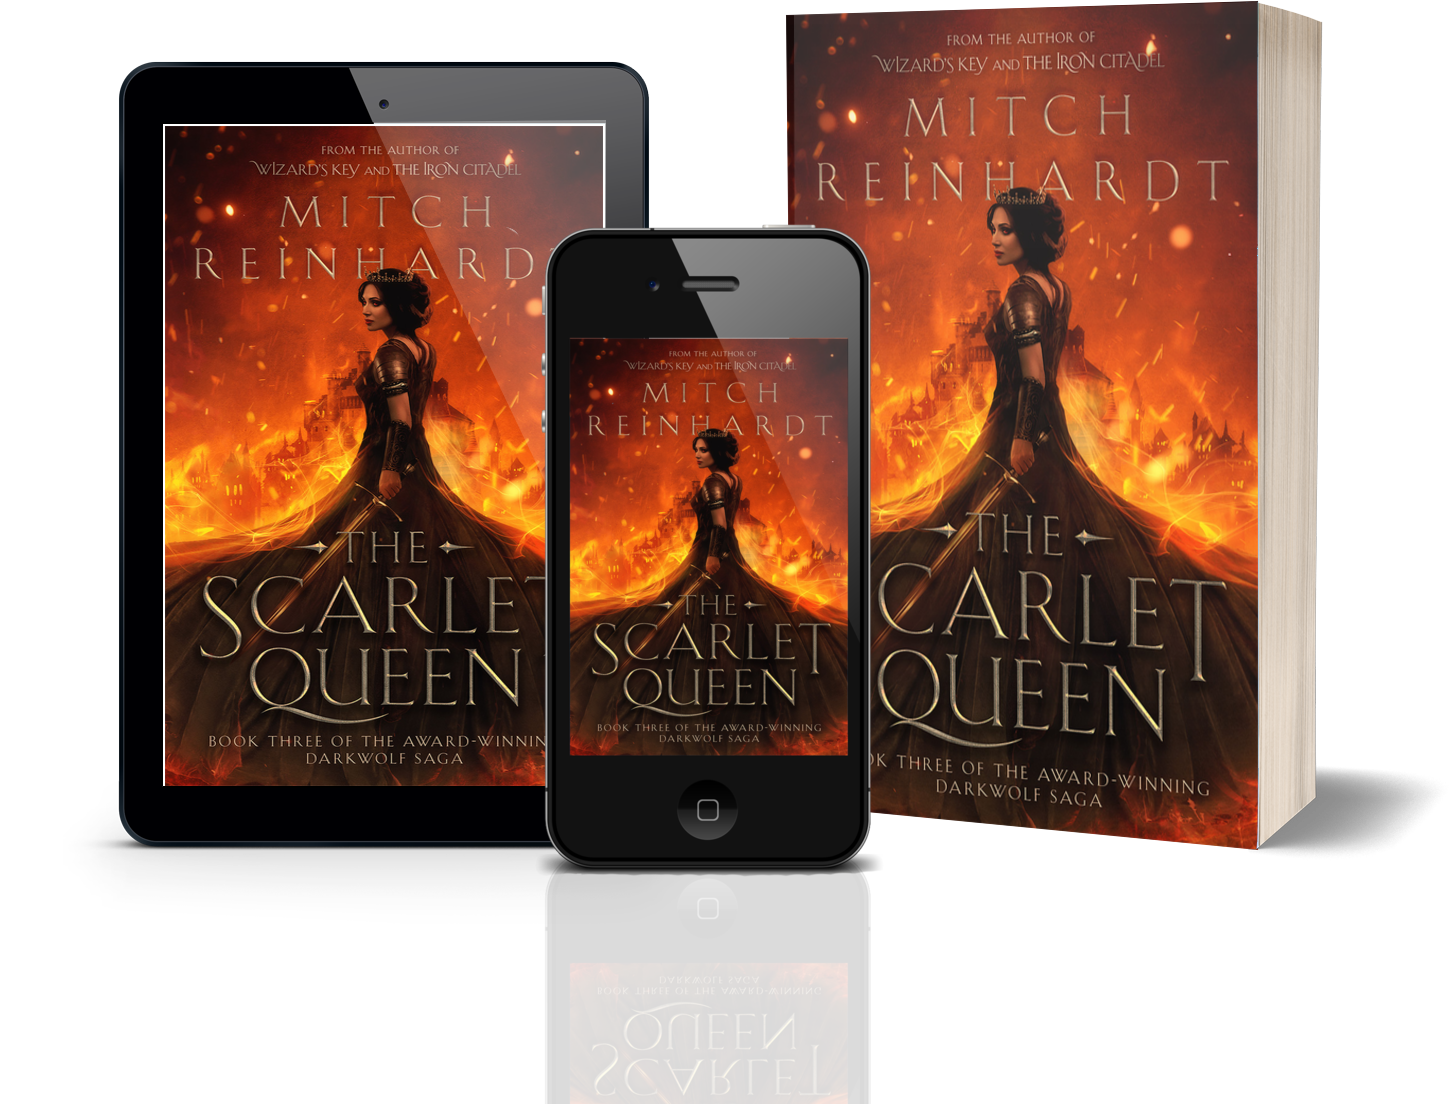 The Scarlet Queen